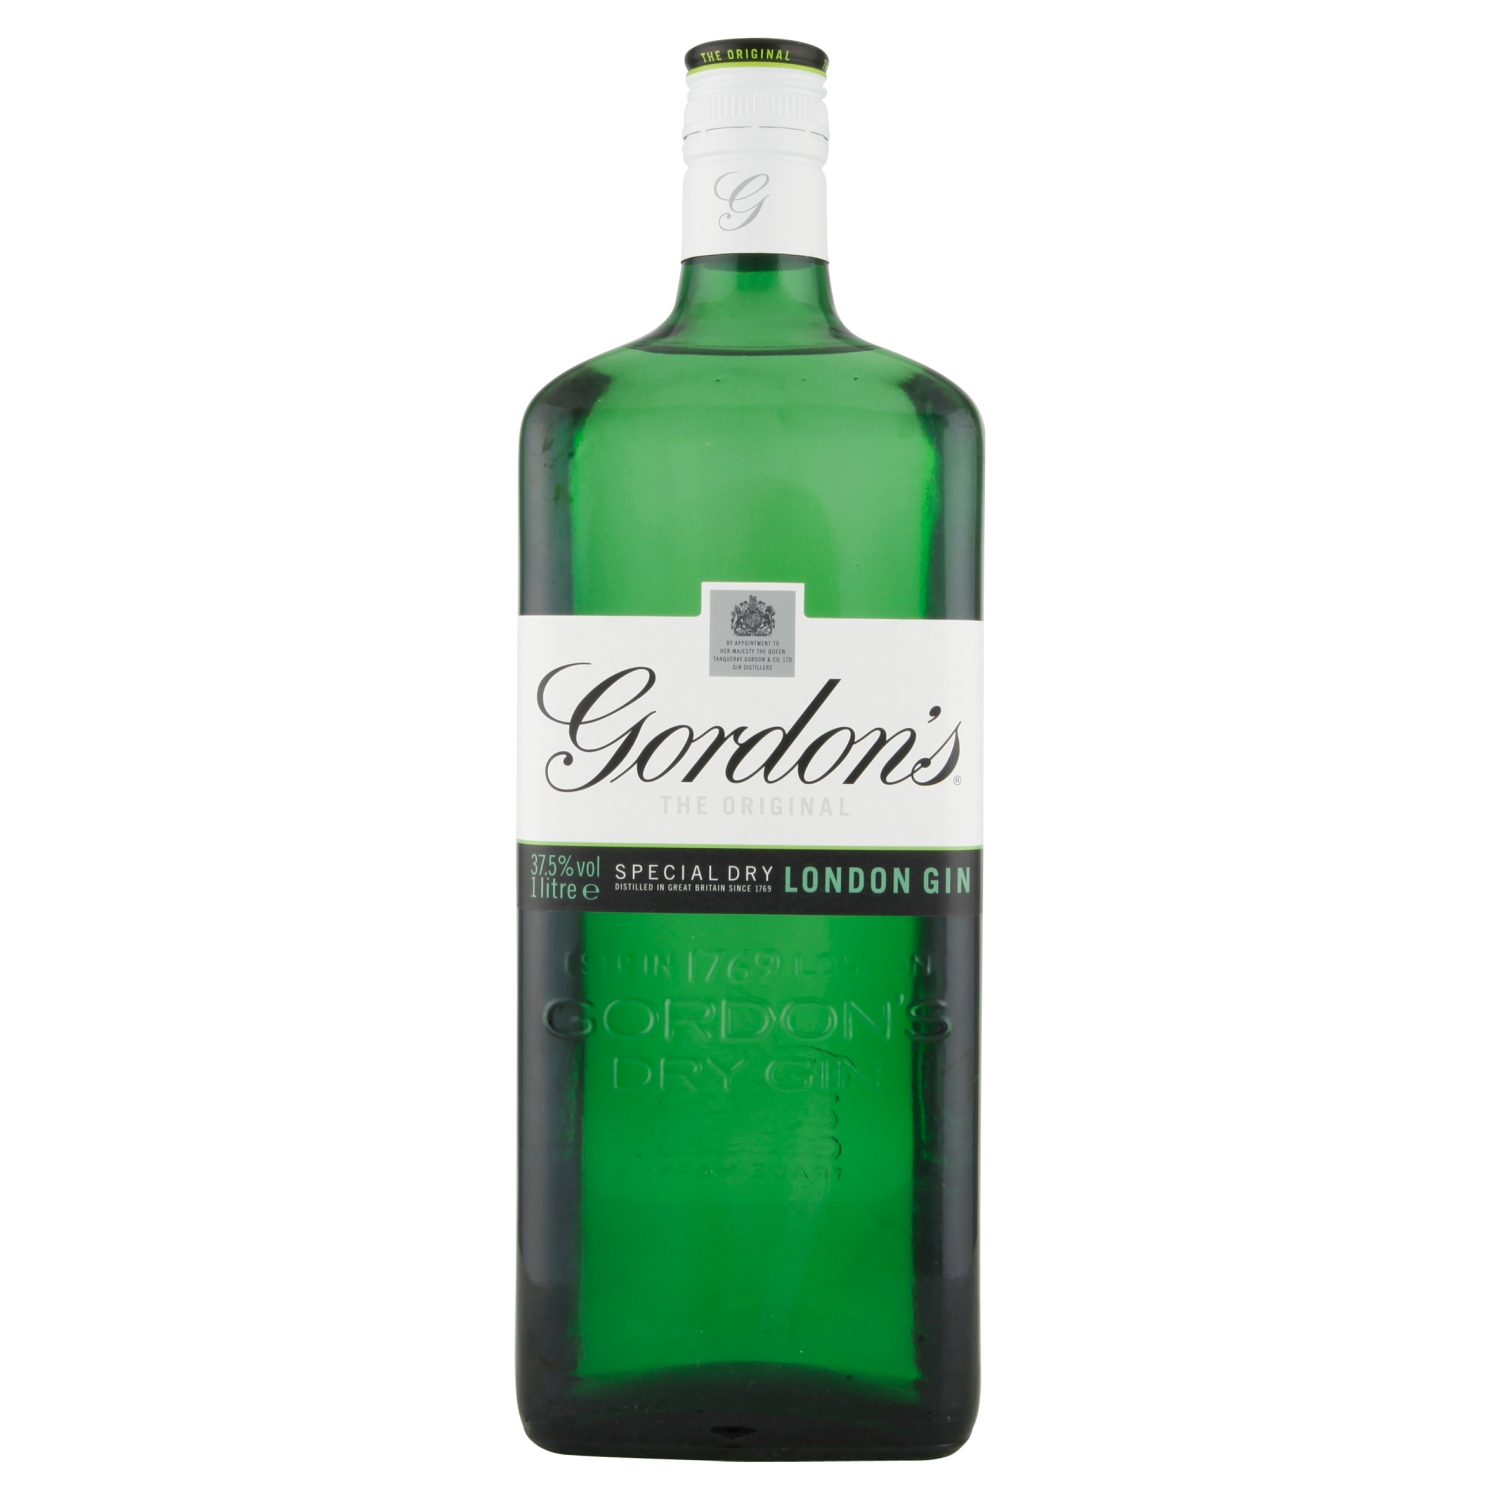 Gordon's Special Dry London Gin 1 Litre